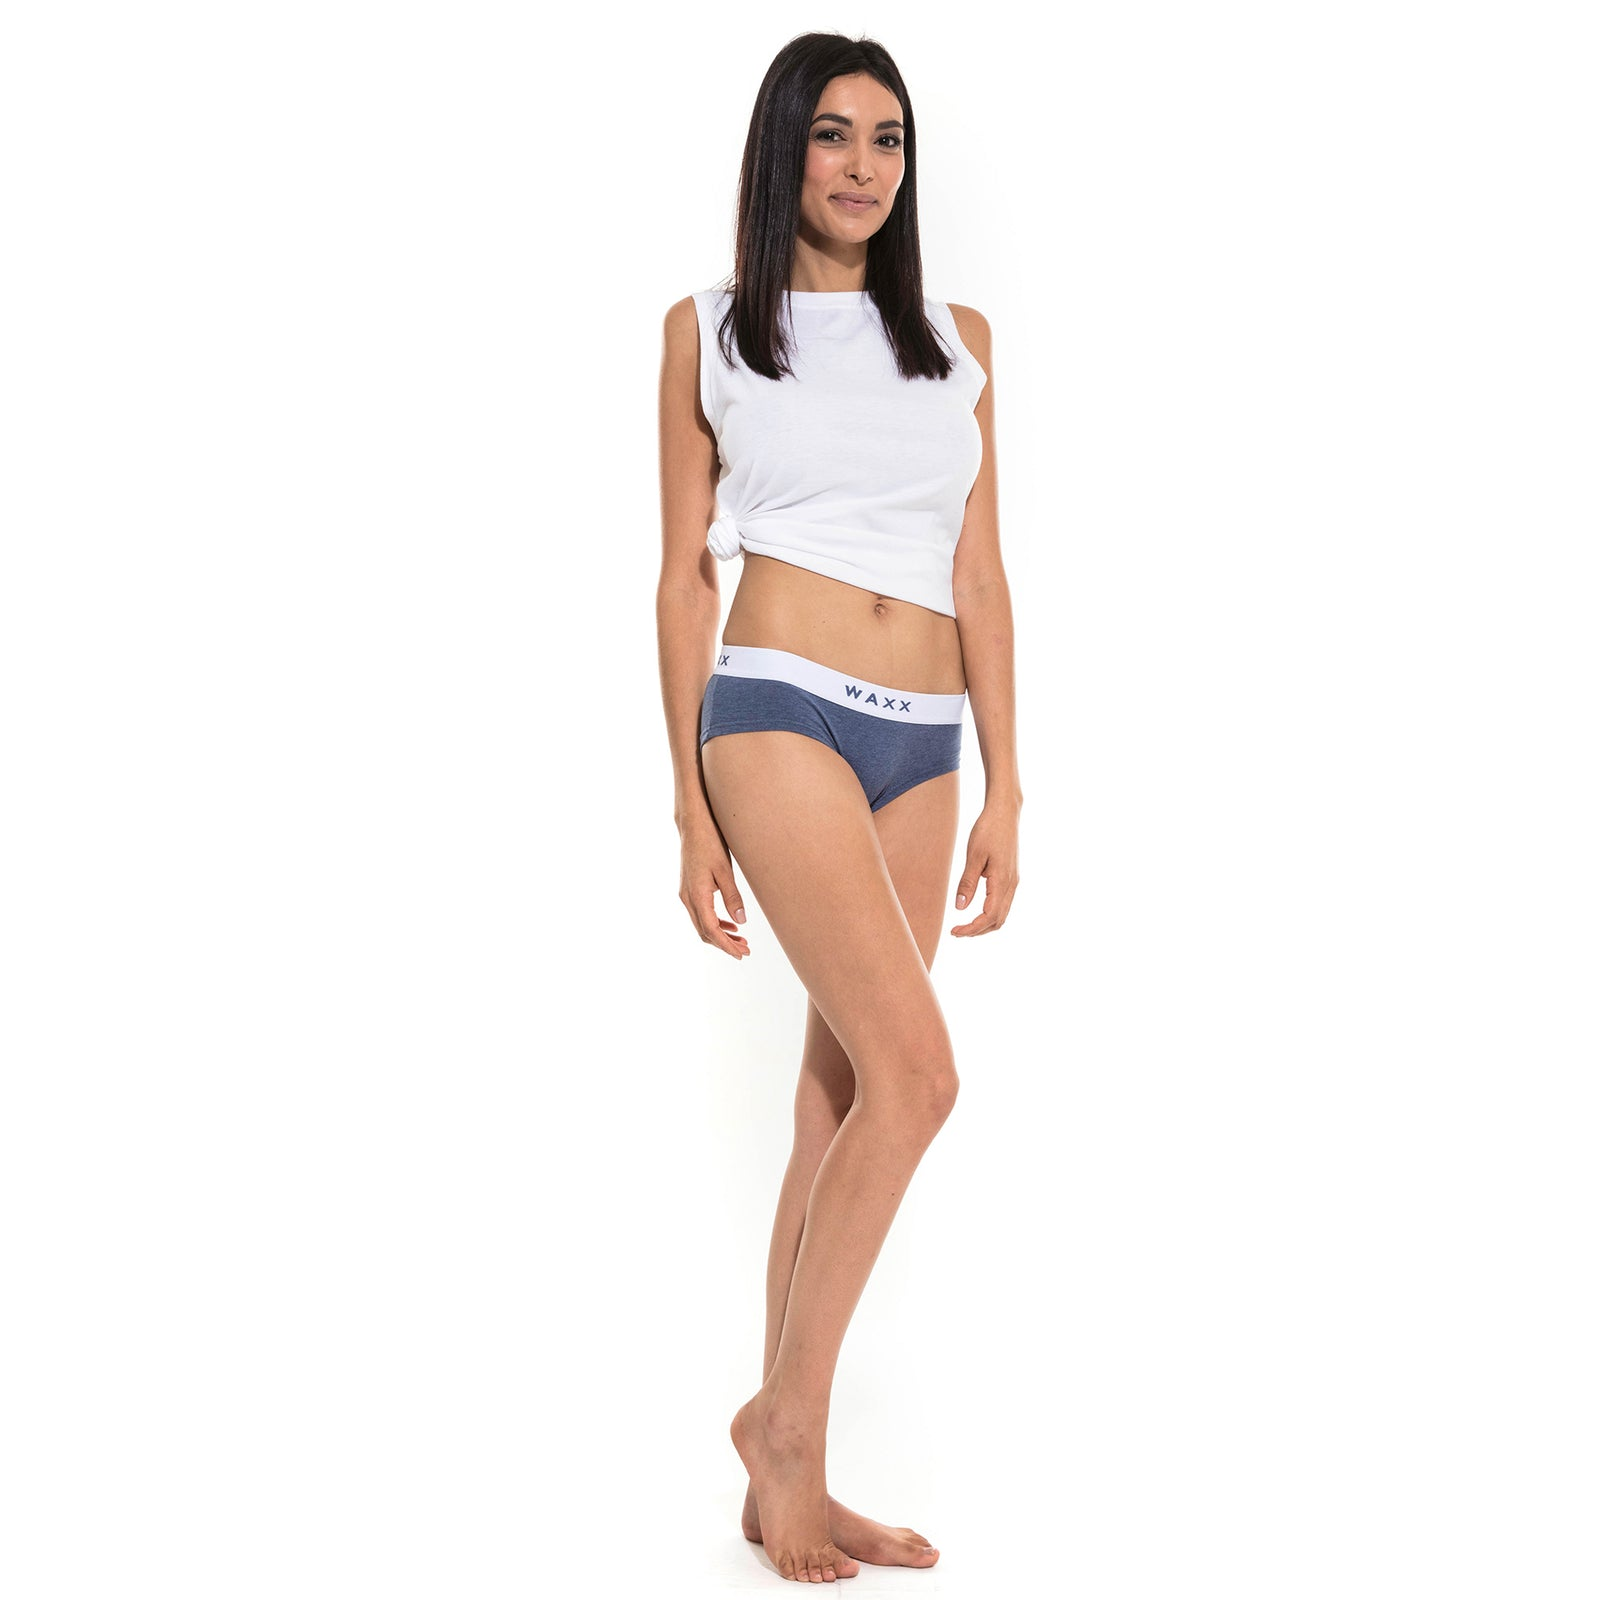 Waxx Ladies Cotton Boy Short Blue Marine